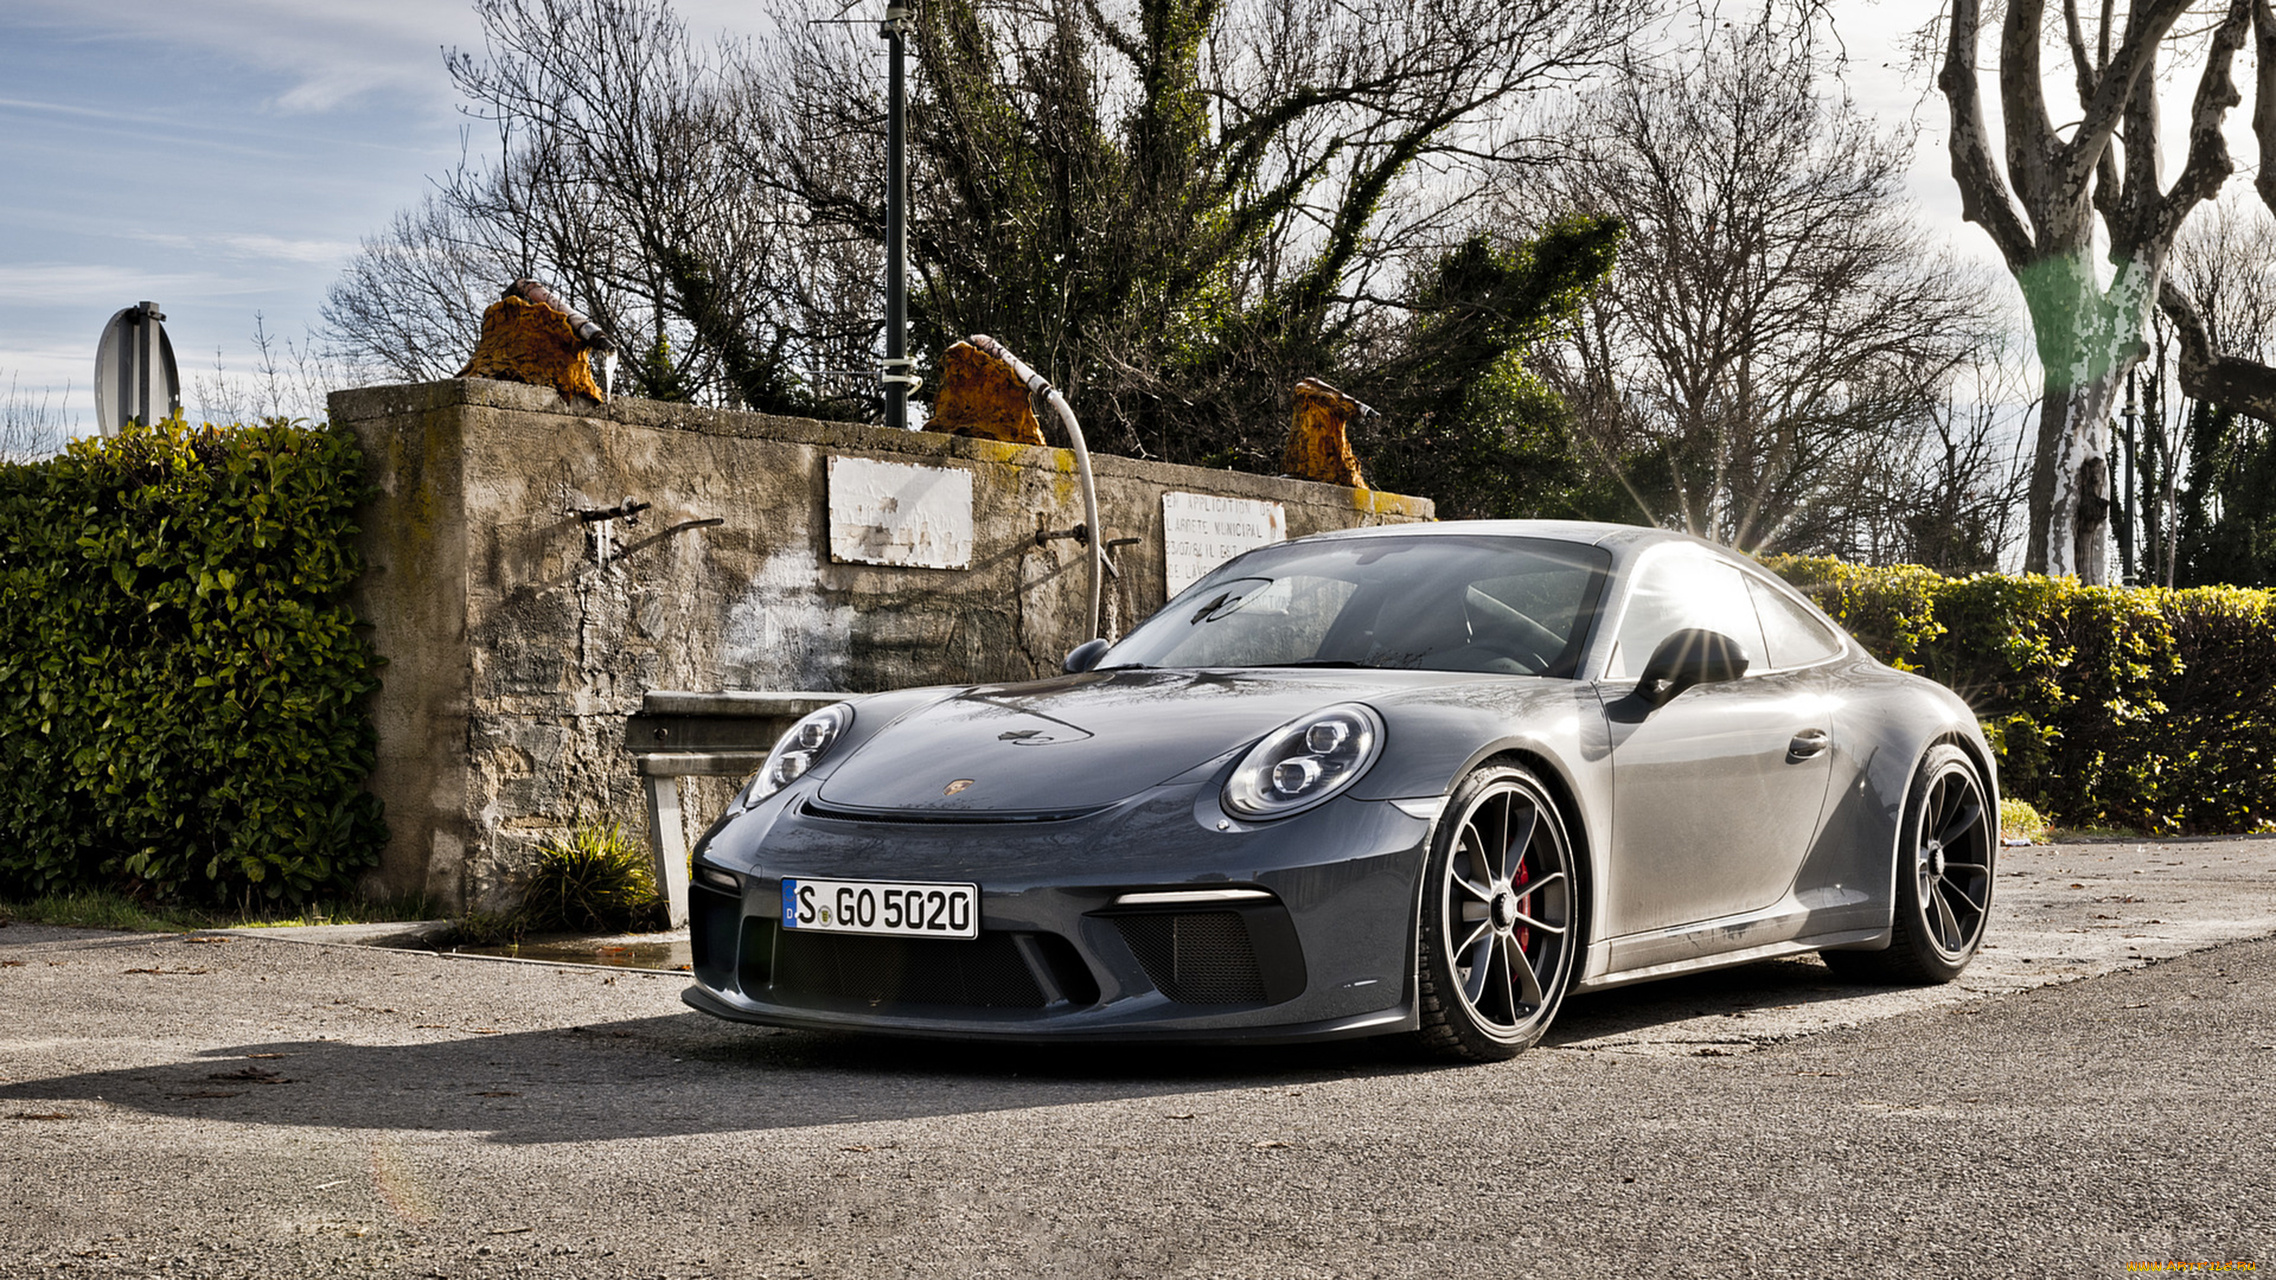 porsche, 911, gt3, with, touring, package, 2018, автомобили, porsche, gt3, 911, 2018, touring, package, with